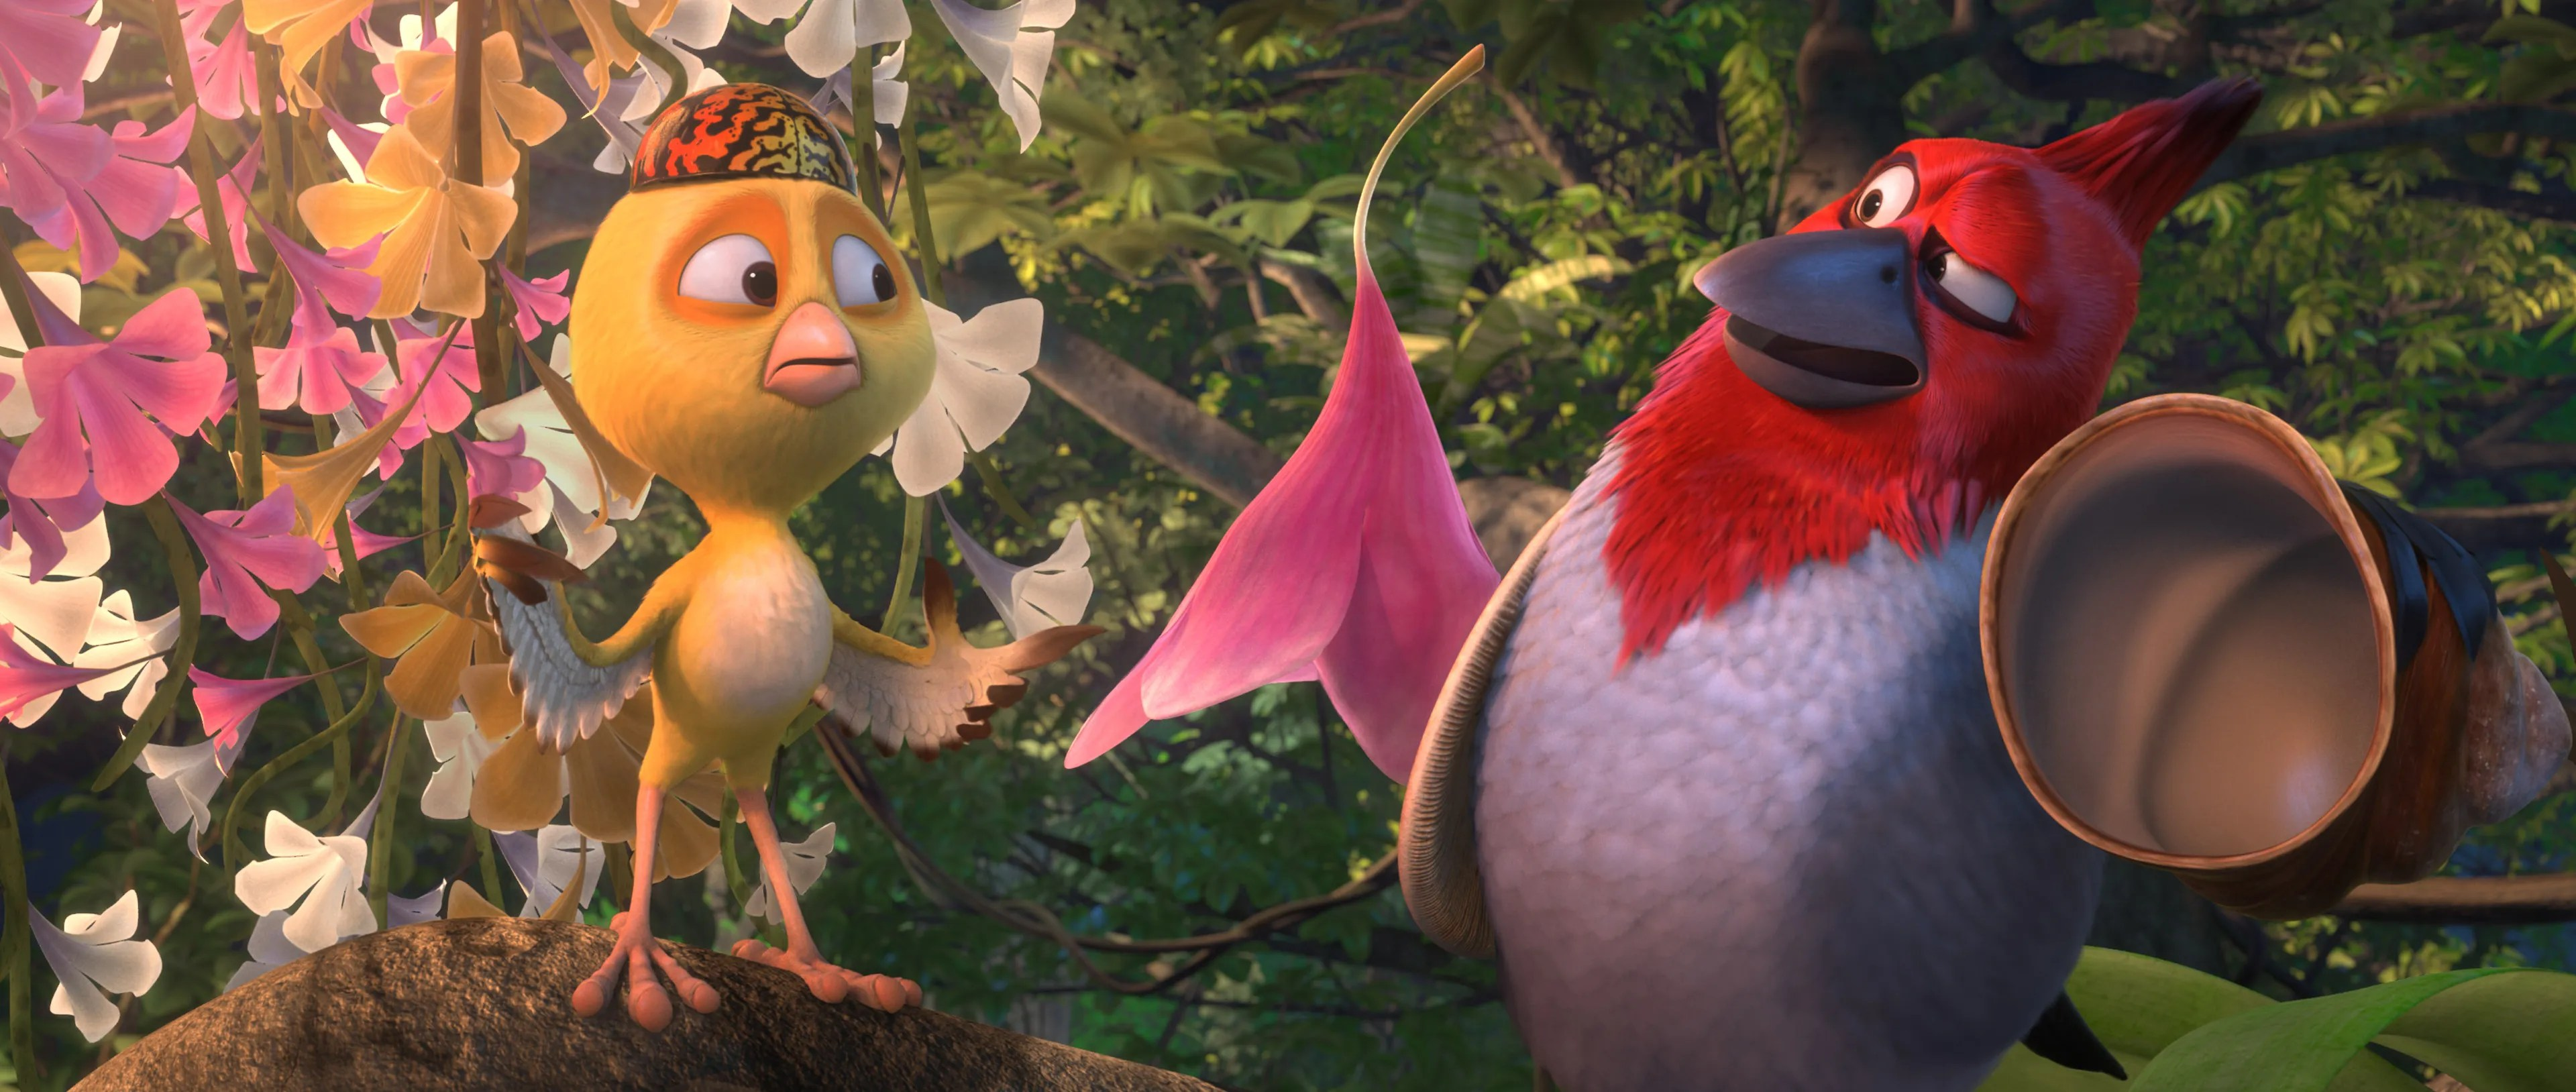 rio 2 all songs free download picture gallery